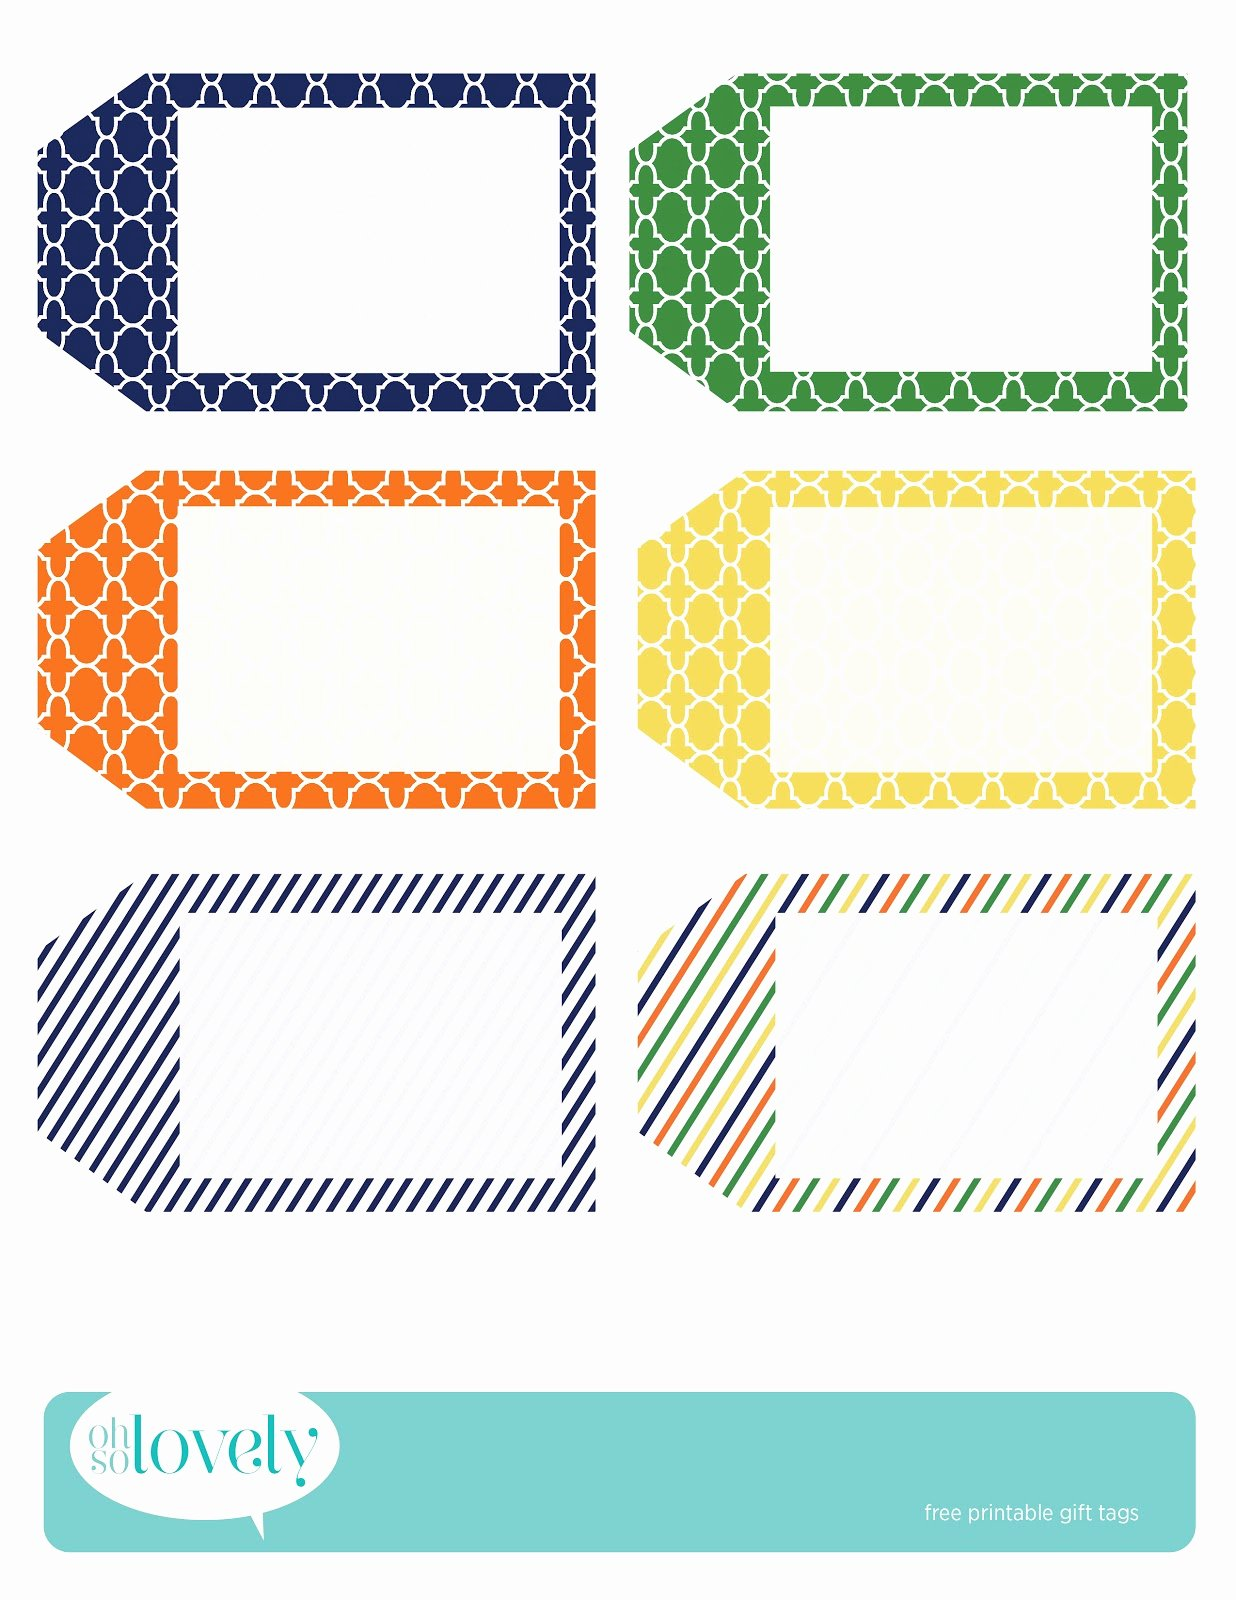 Free Printable Blank Gift Tags Beautiful Freebies Gift Tags Oh so Lovely Blog